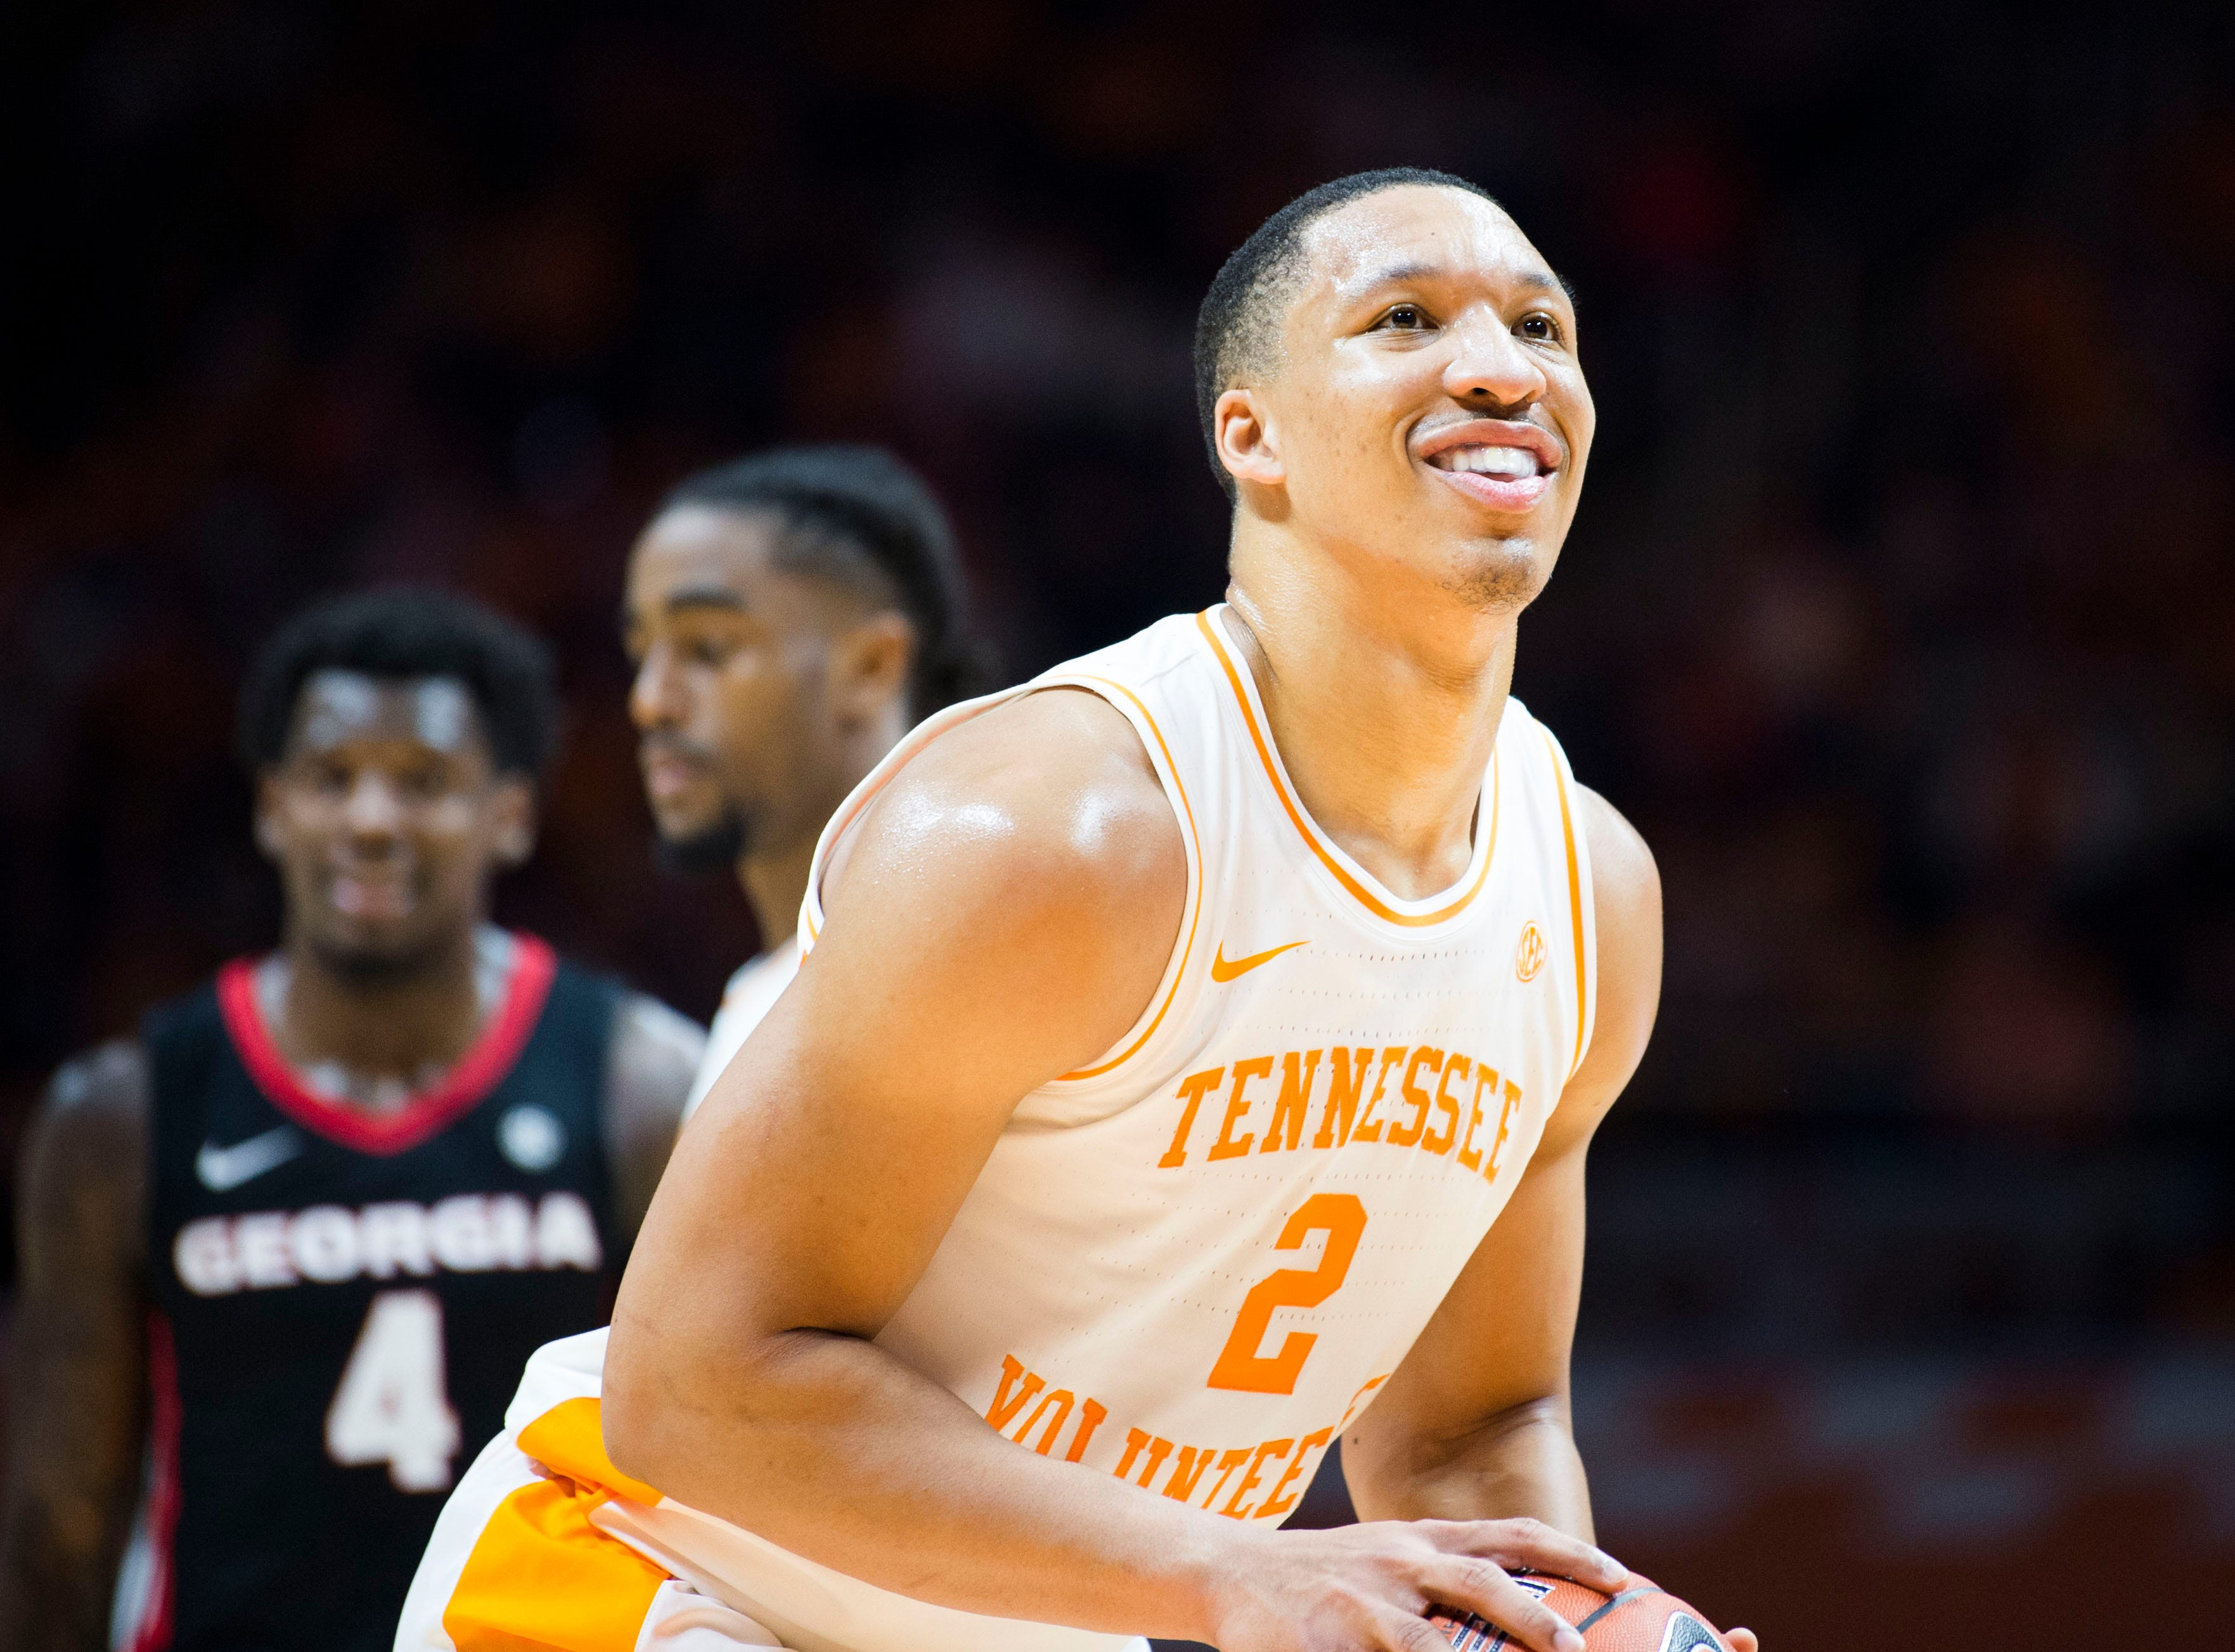 Tennessee's Grant Williams (2) smiles while taking a foul shot during a college basketball game between Tennessee and Georgia at Thompson-Boling Arena Saturday, Jan. 5, 2019.